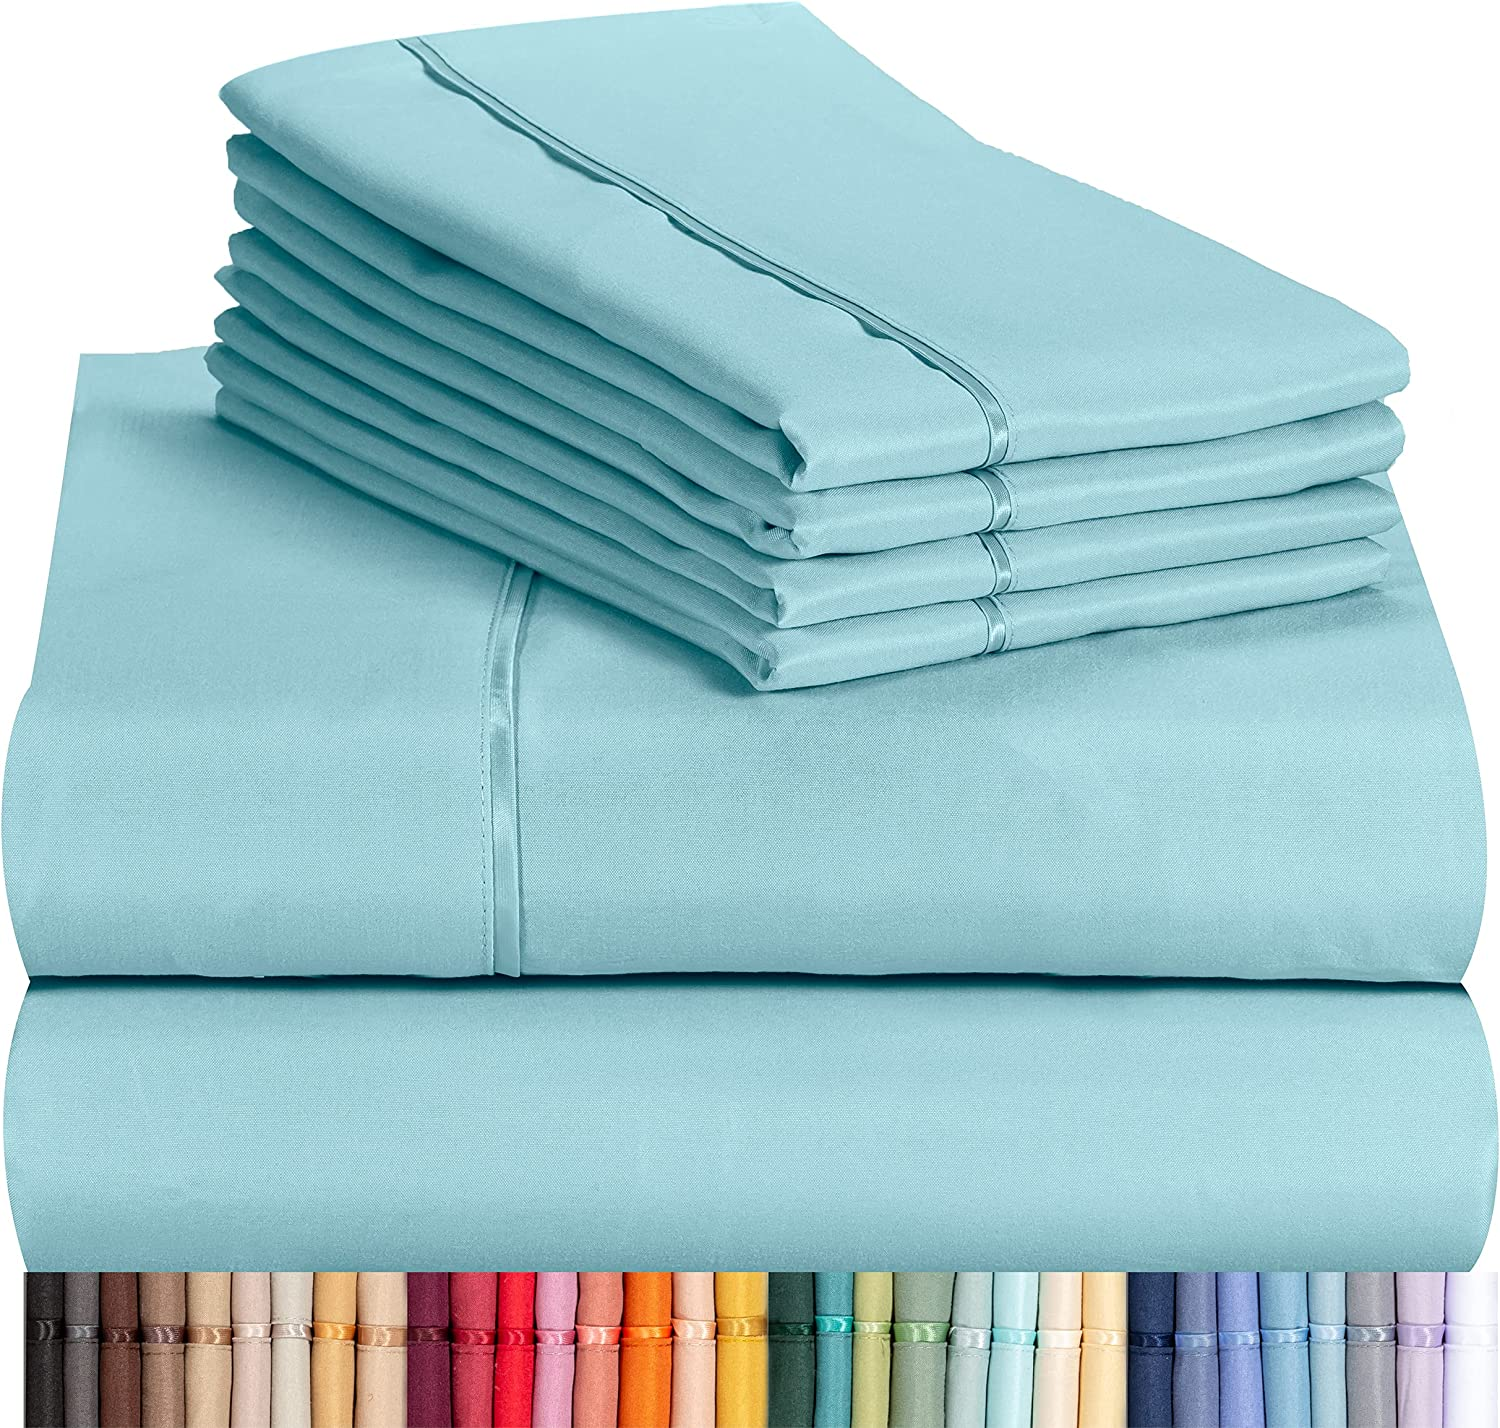 LuxClub 6-Piece Bamboo Sheets (Full) $36.95 Coupon